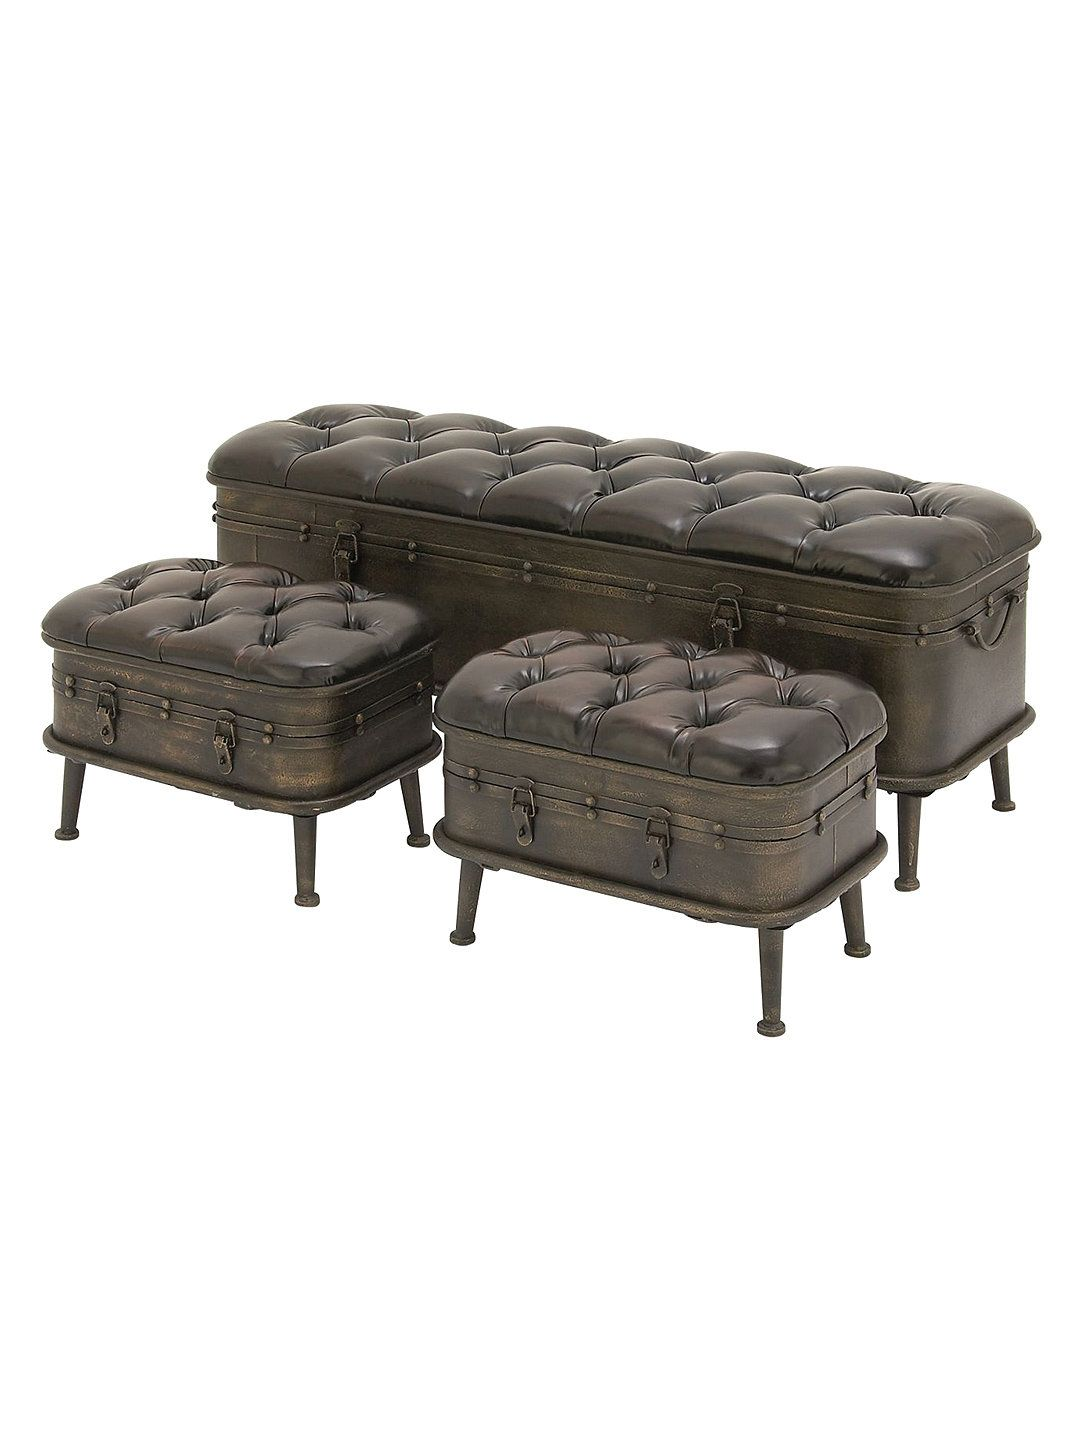 Rustic Reflections Storage Benches (Set of 3) by UMA at Gilt